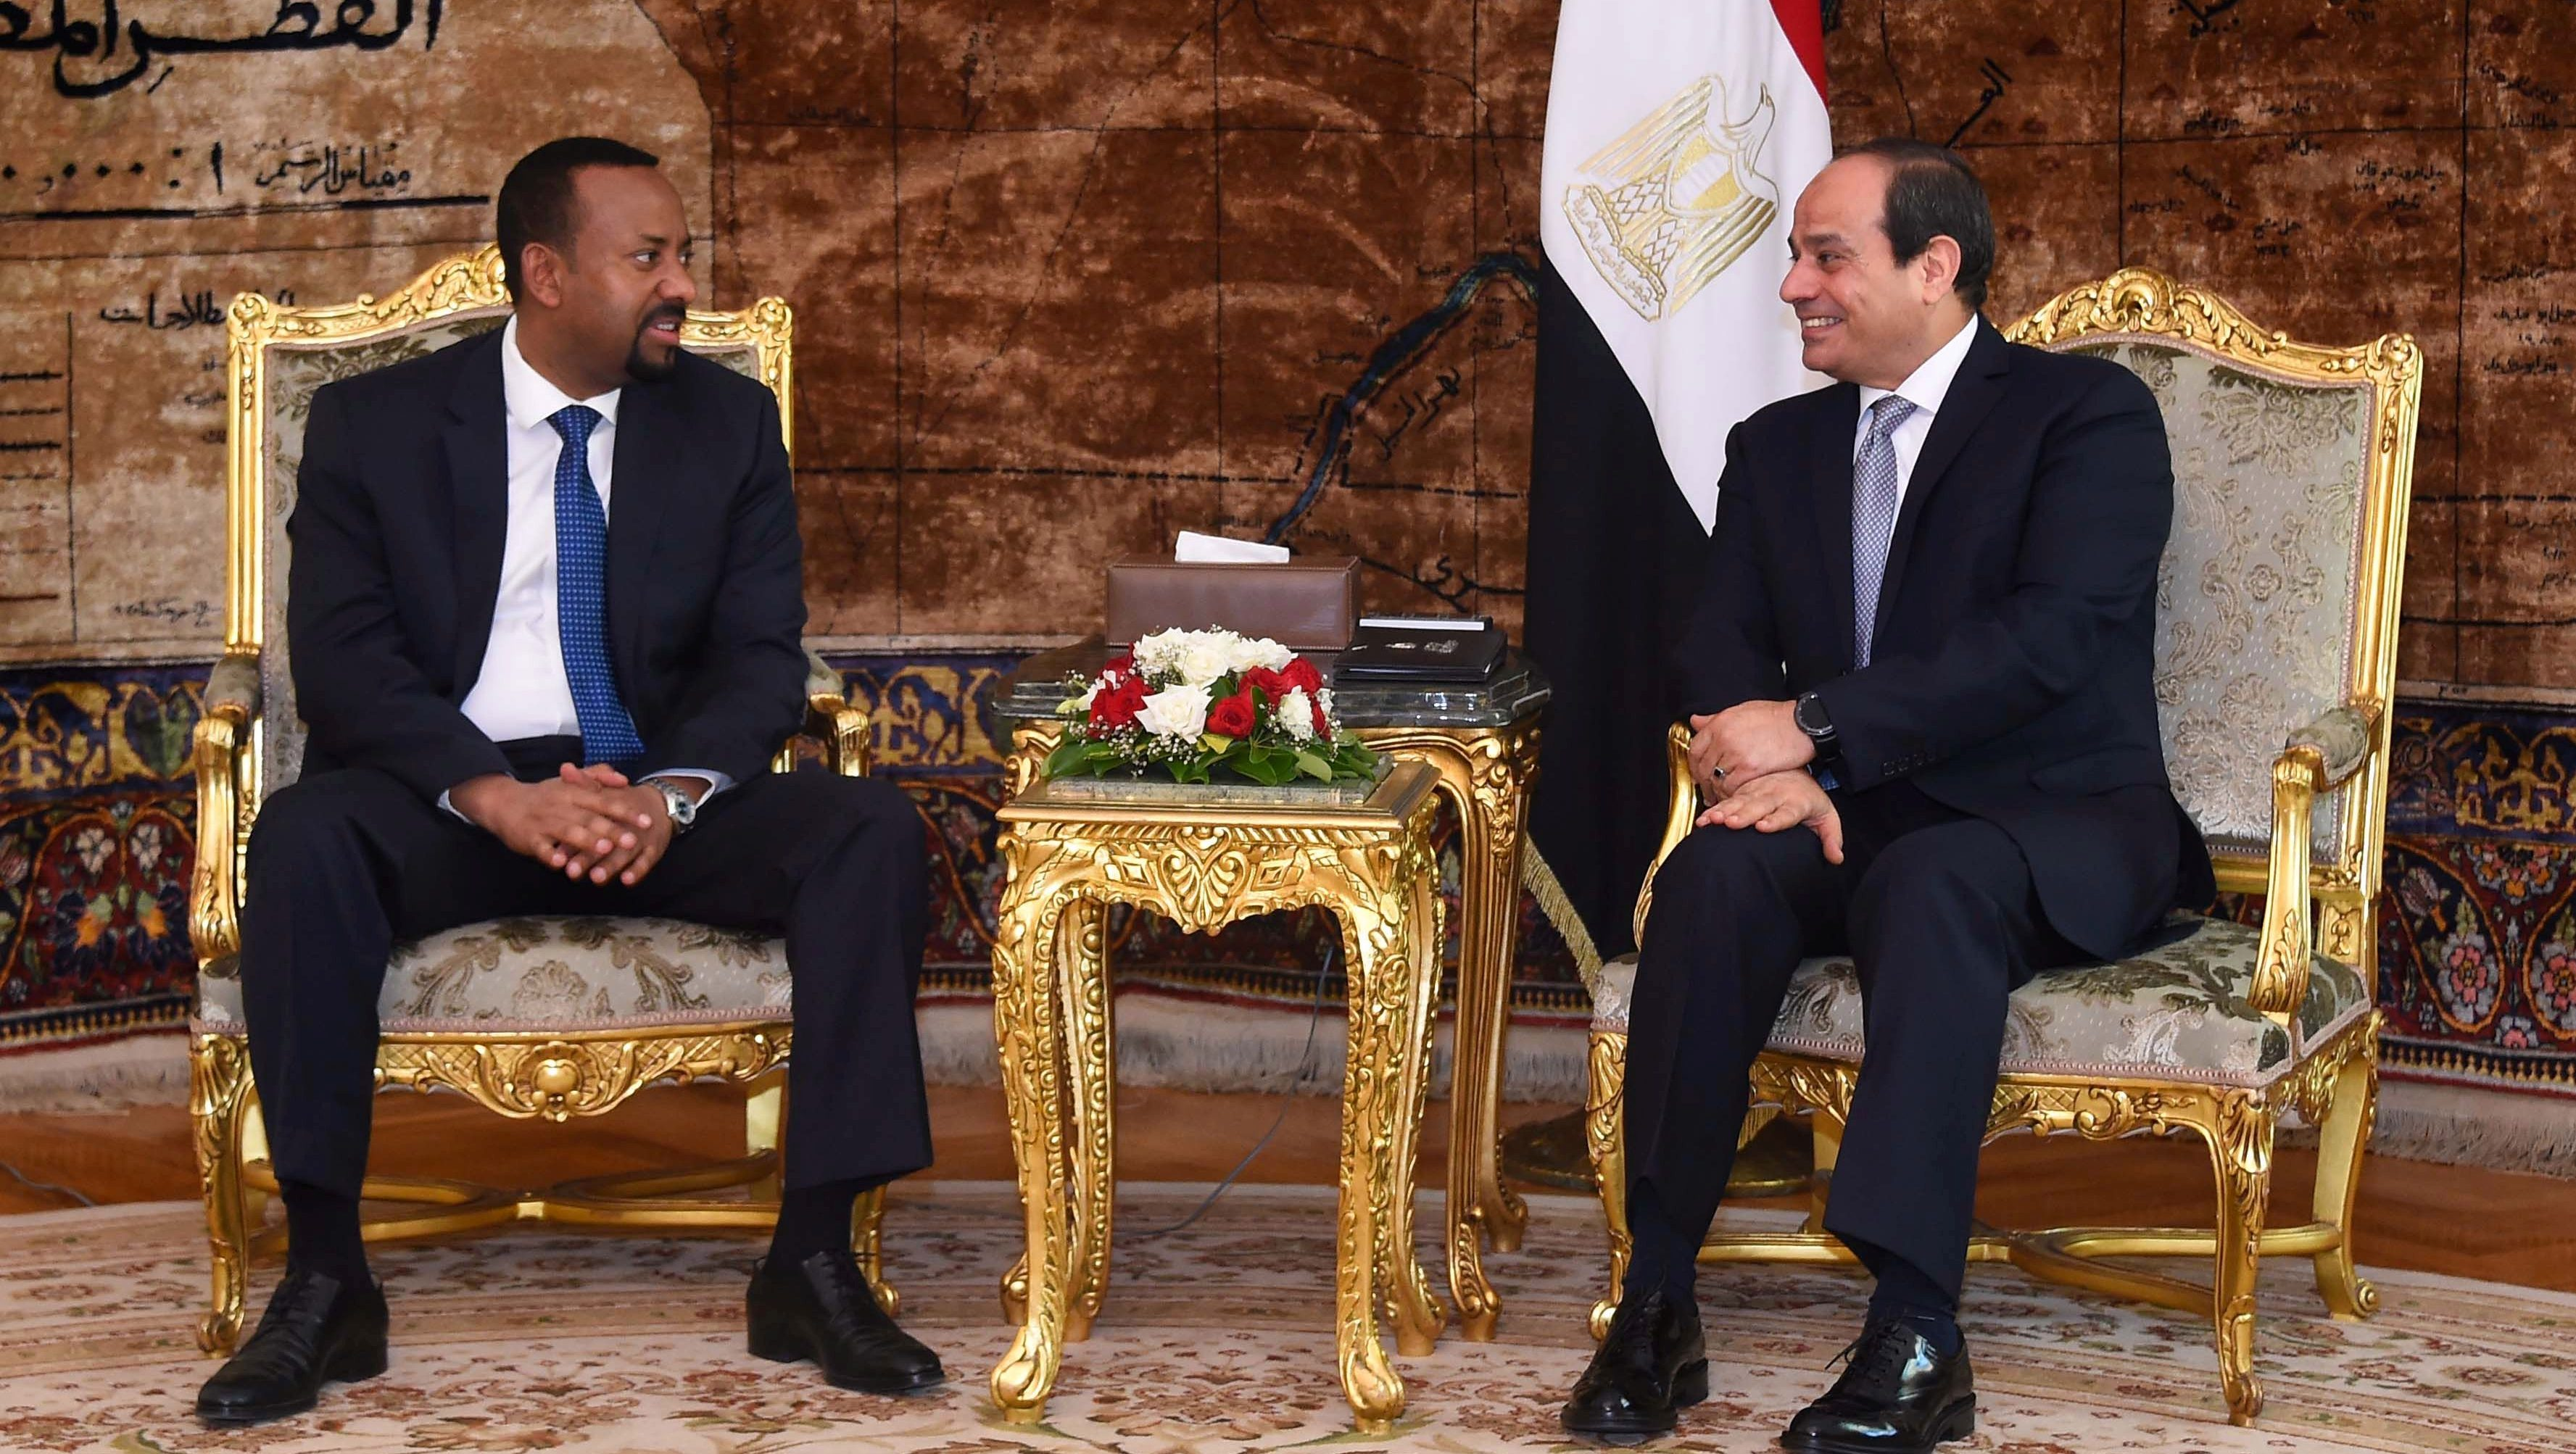 PM says Ethiopia will not cut Egypt's share of Nile waters